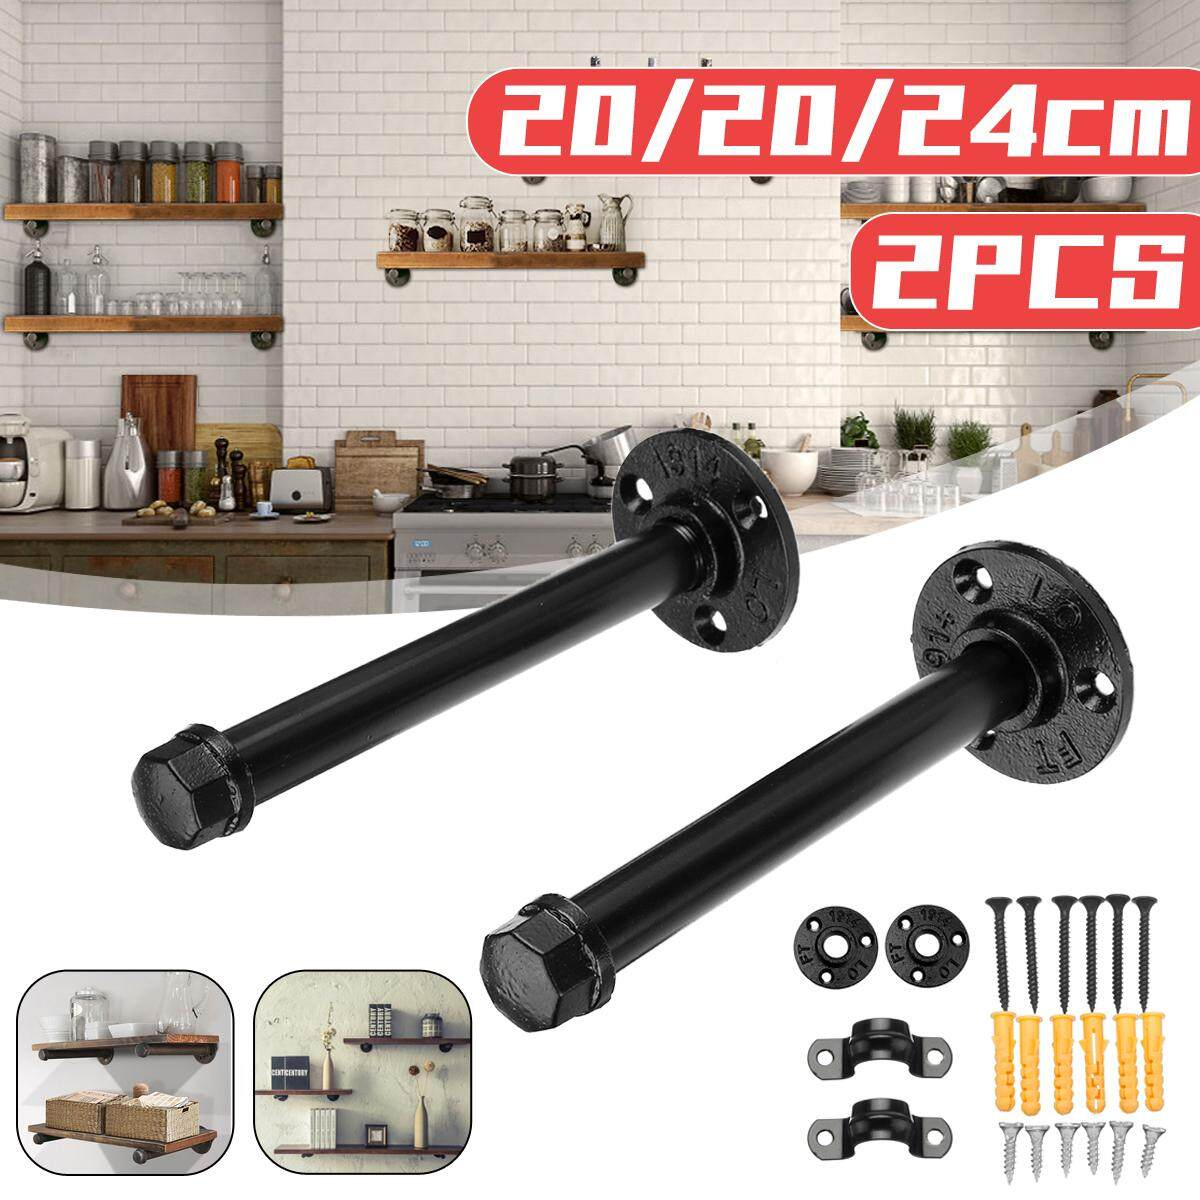 2pcs 20cm Industrial Steampunk Iron Pipe Shelf Brackets Holder DIY Home Decor With Screws